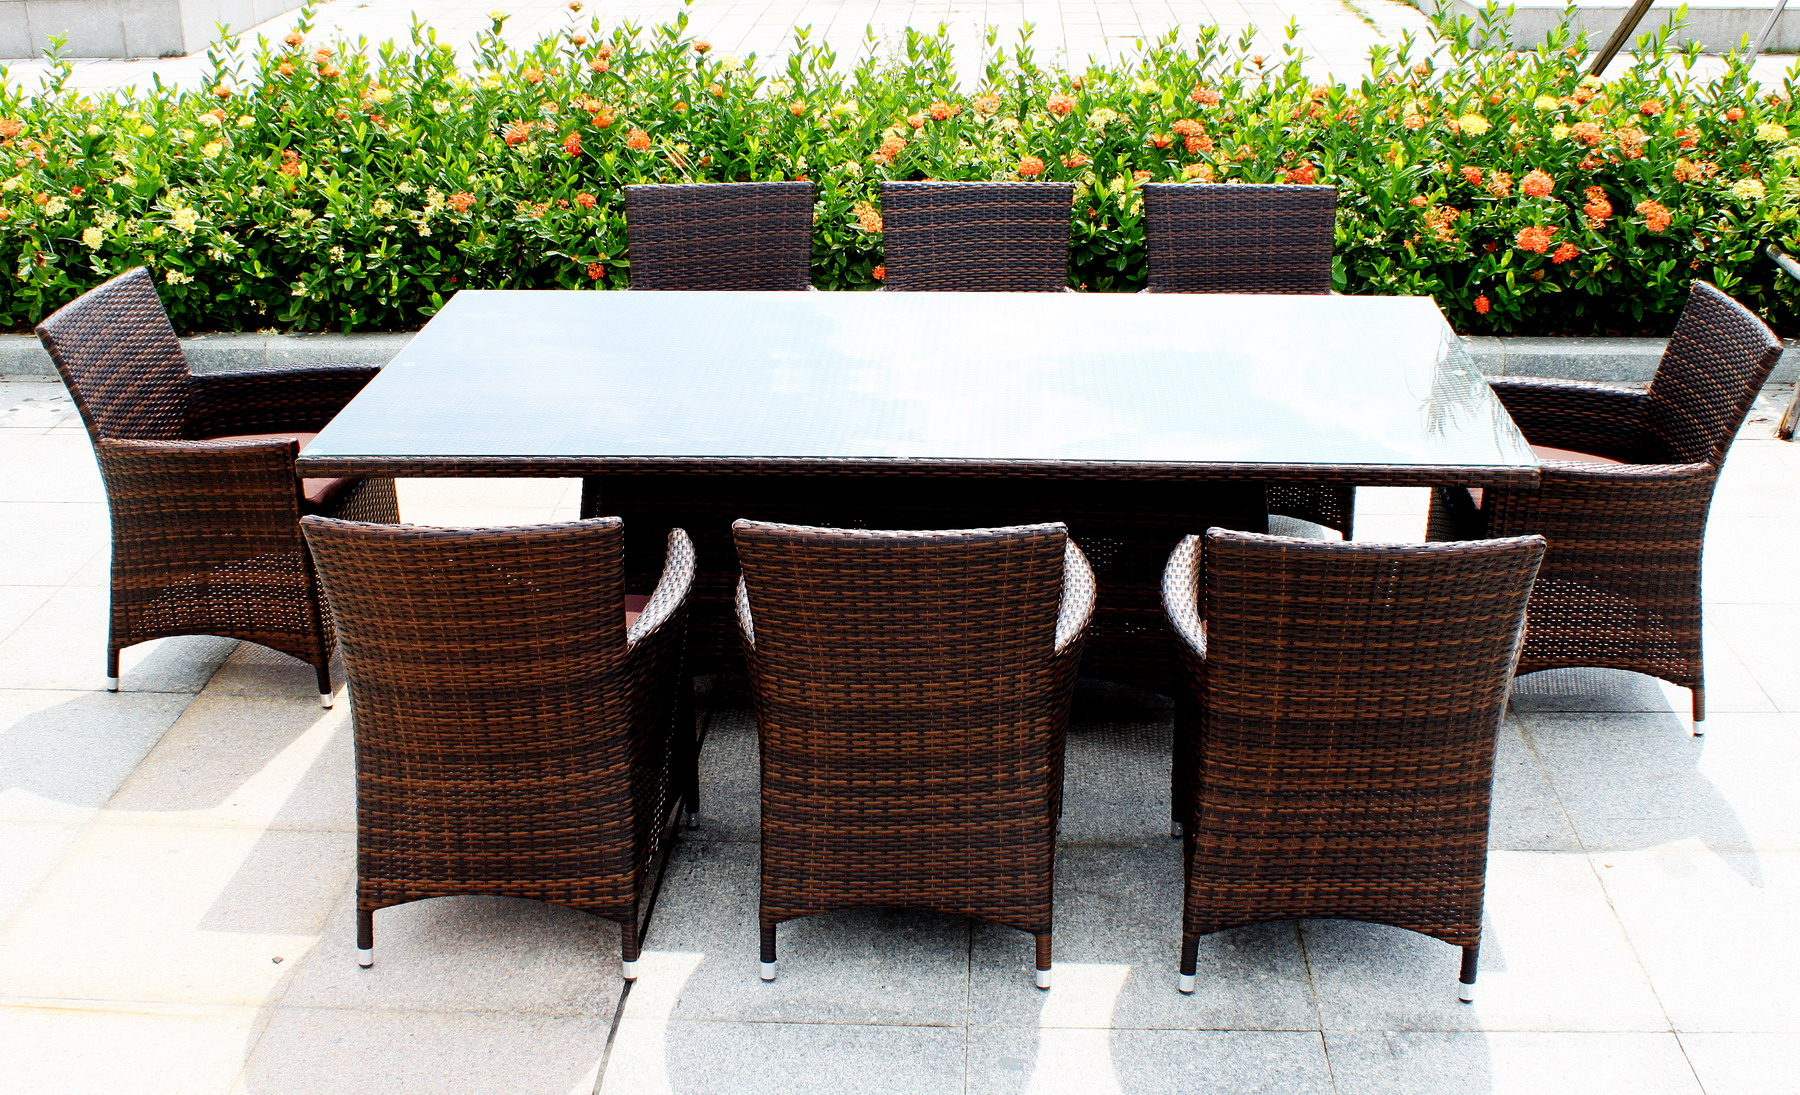 Attractive choosing the best outdoor dining table for your patio iykebbr